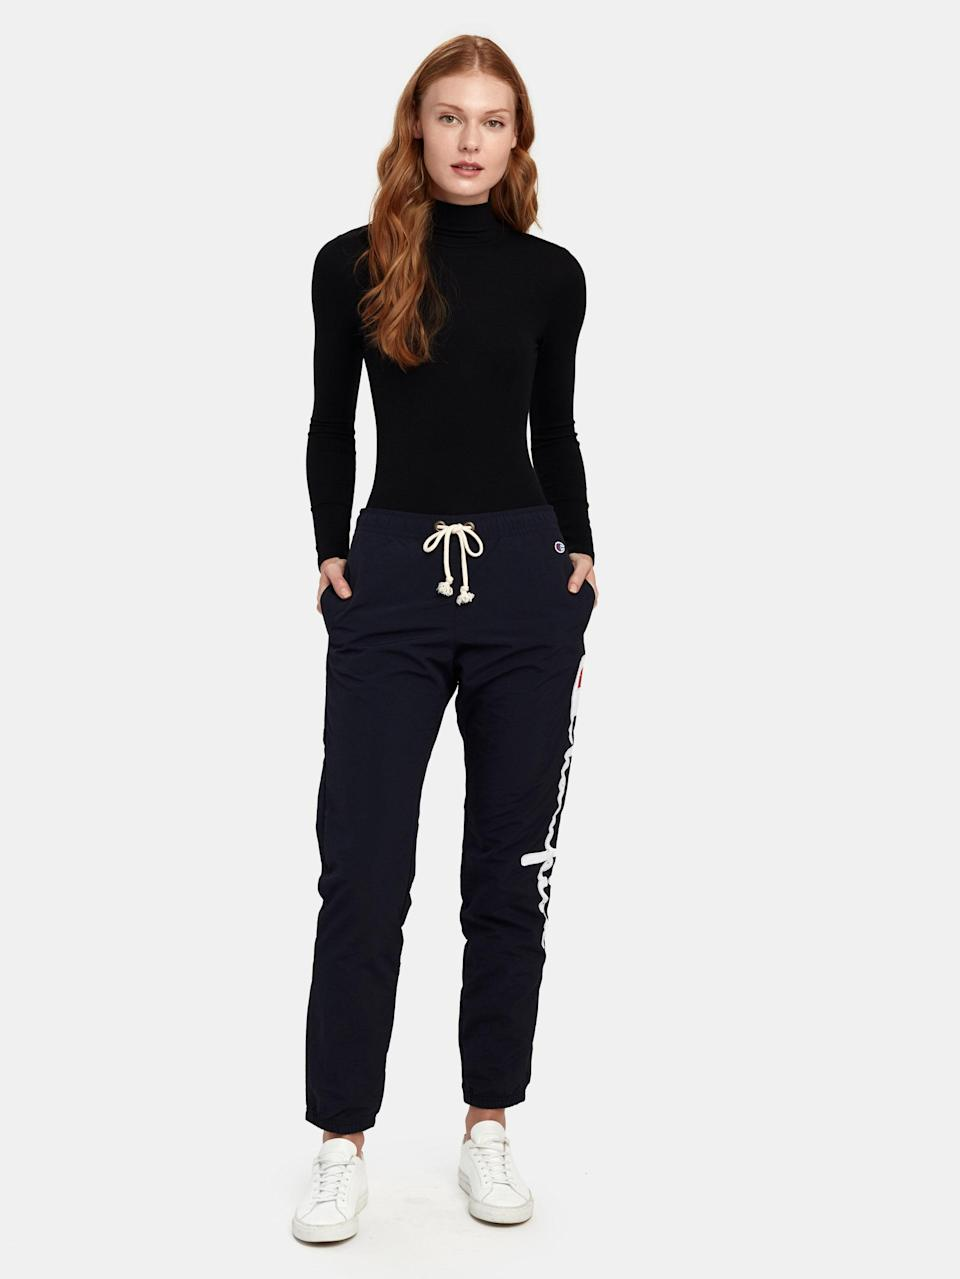 """Add these classic, relaxed sweats to your daily lineup, and take cues from the styling above if you've got a Zoom meeting or a socially distant hang on your agenda. $42, Verishop. <a href=""""https://www.verishop.com/champion-reverse-weave/pants/elastic-cuff-sweatpants/p1833287876643?color=navy"""" rel=""""nofollow noopener"""" target=""""_blank"""" data-ylk=""""slk:Get it now!"""" class=""""link rapid-noclick-resp"""">Get it now!</a>"""